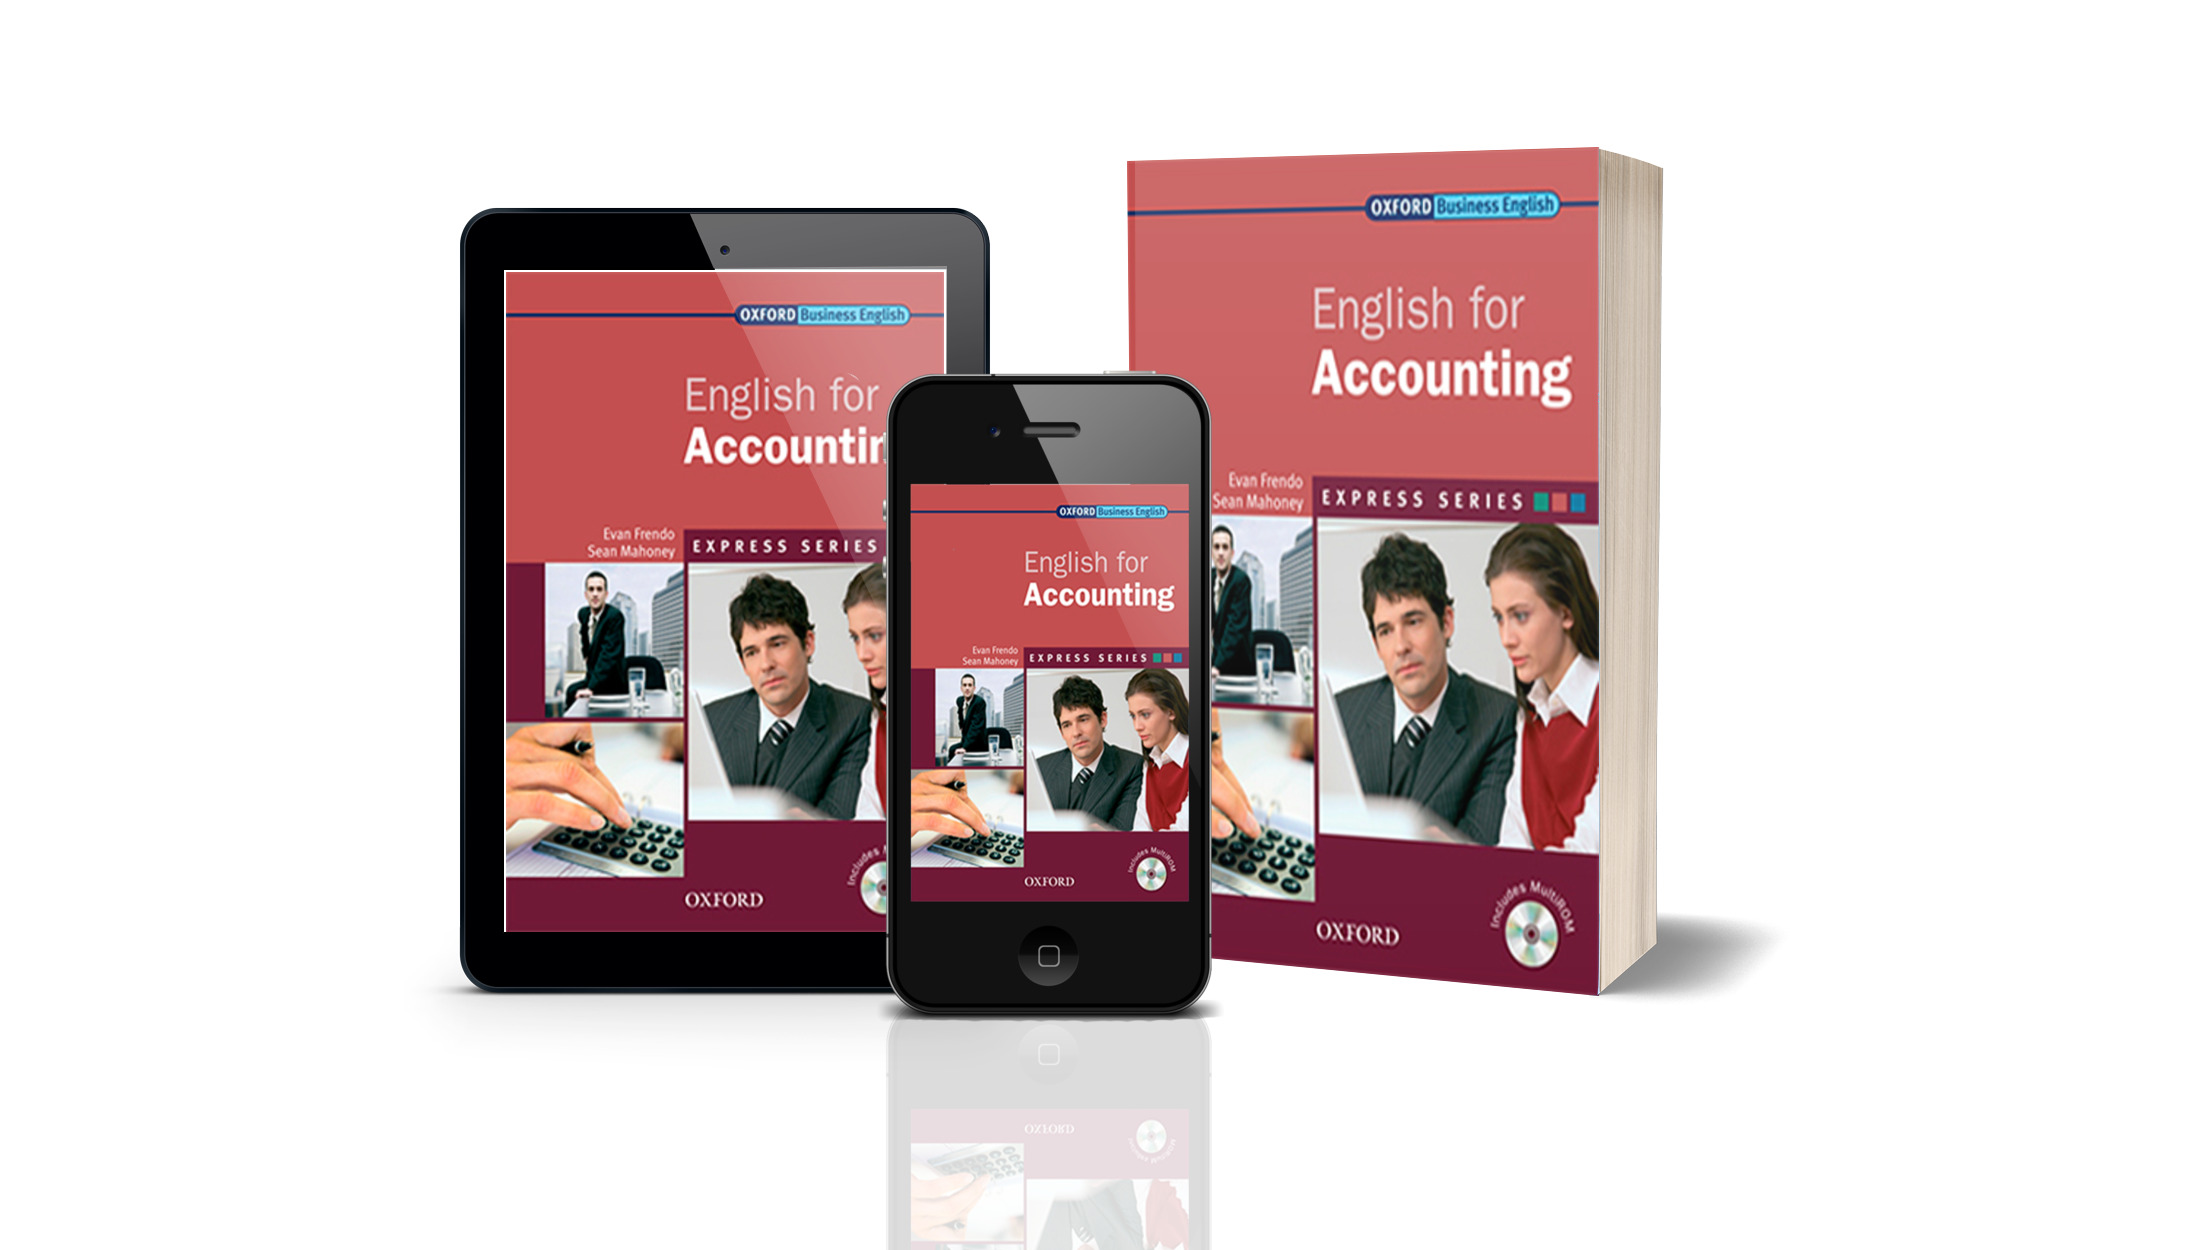 BOOK: ENGLISH FOR ACCOUNTING - OXFORD